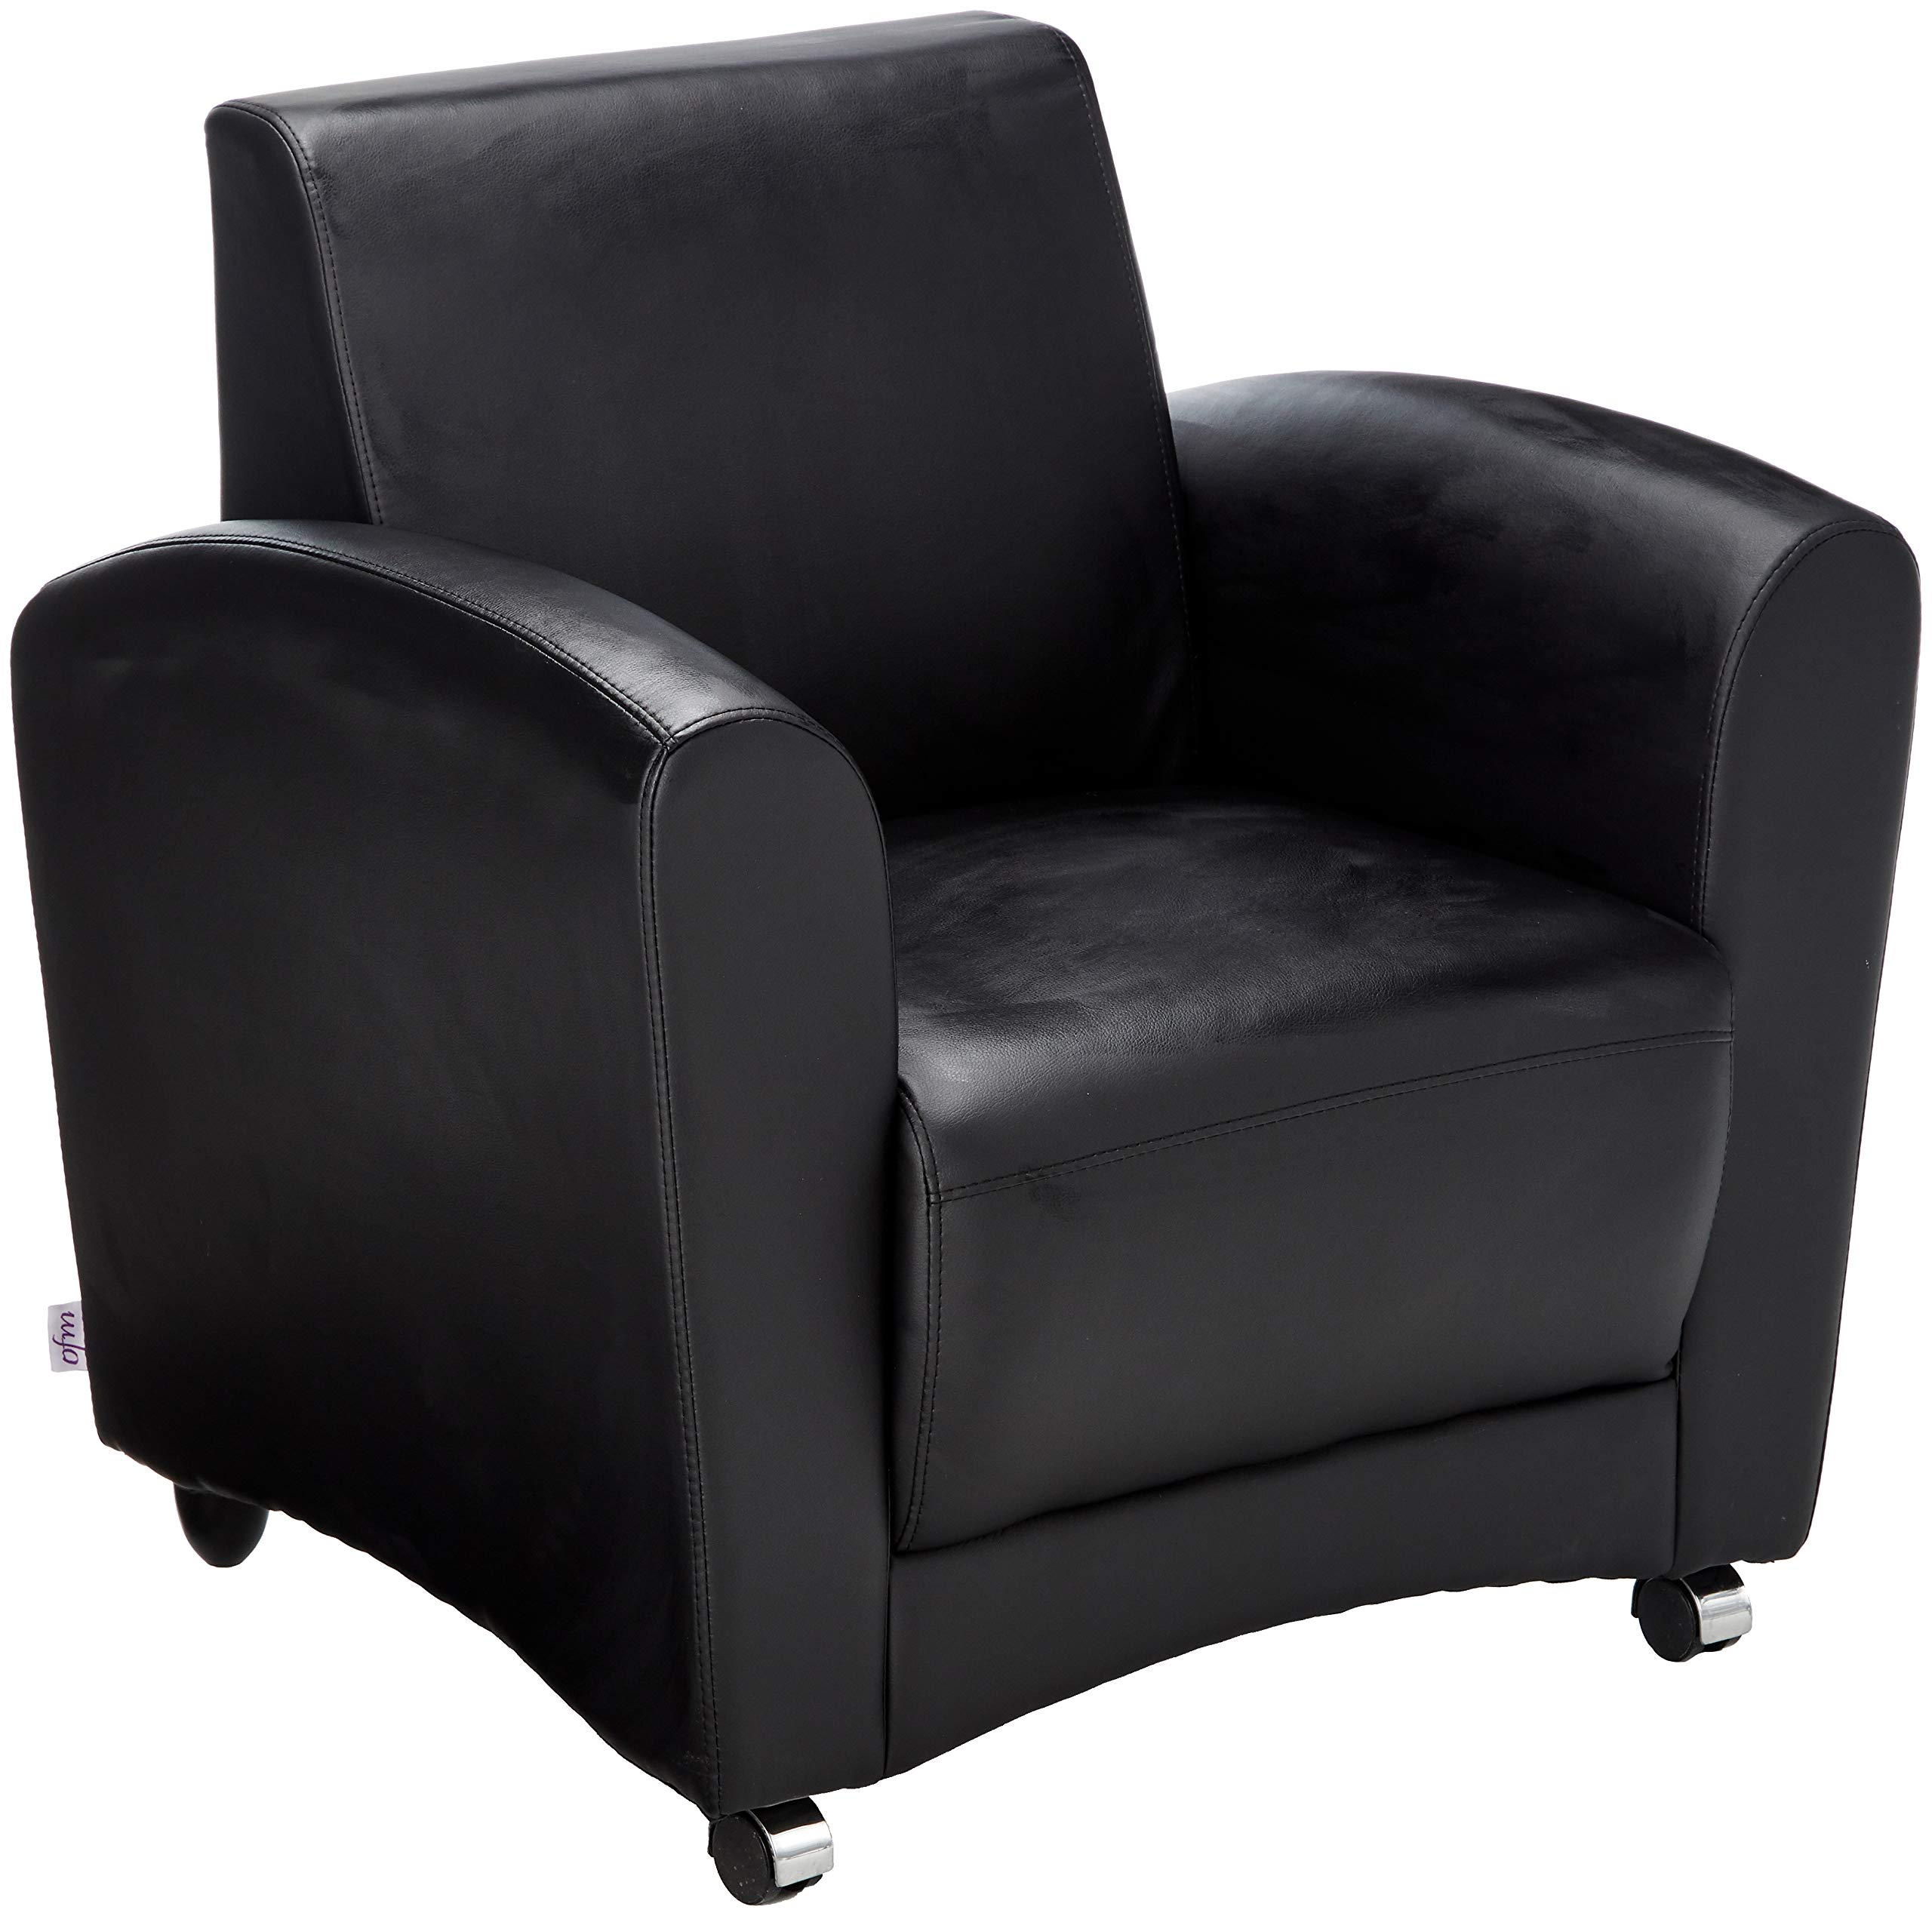 OFM InterPlay Series Upholstered Guest / Reception Chair, Black by OFM